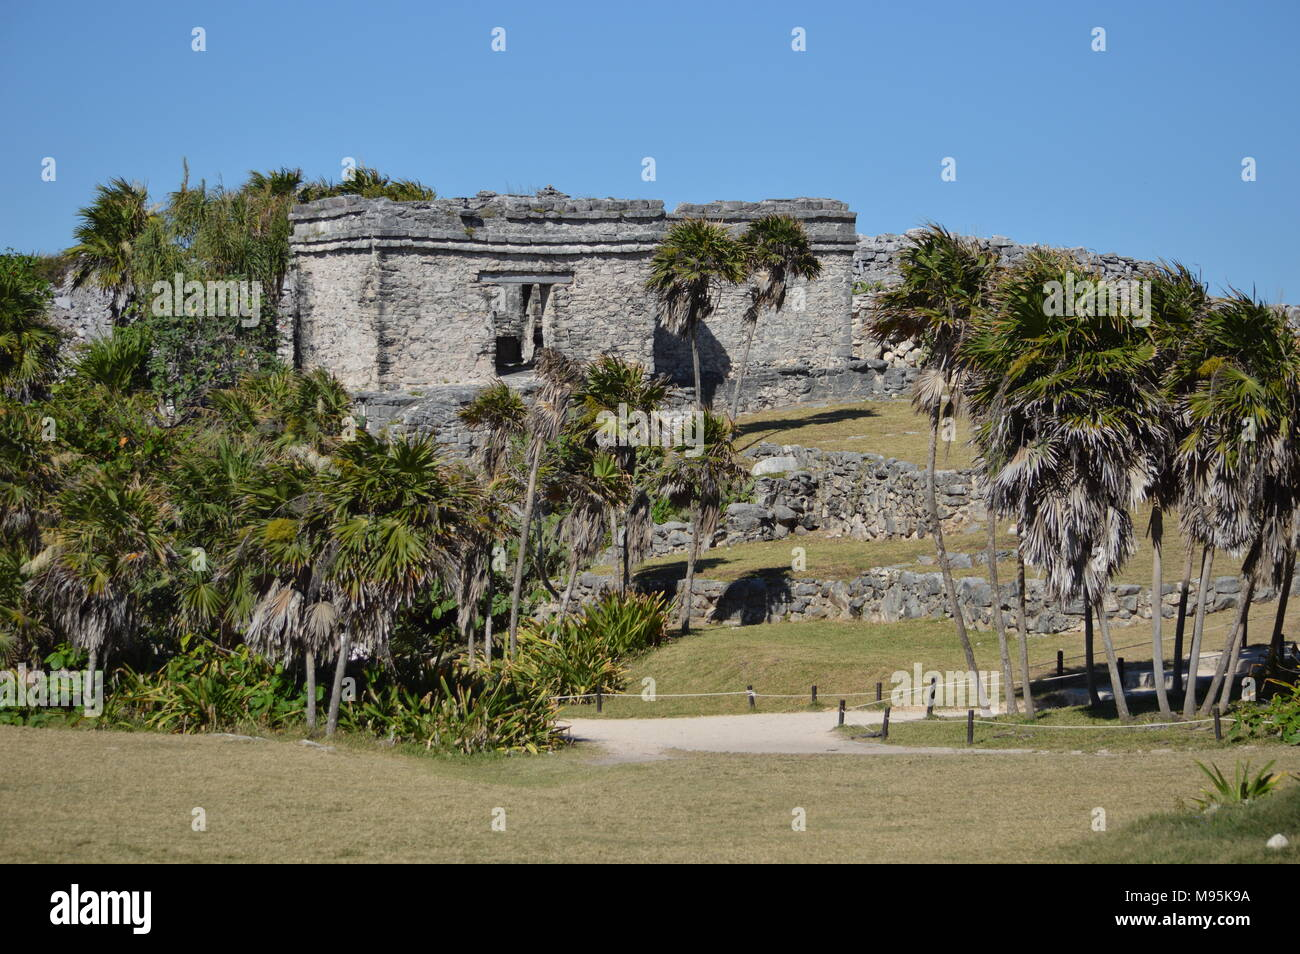 The Tulum ruins in Mexico - Stock Image